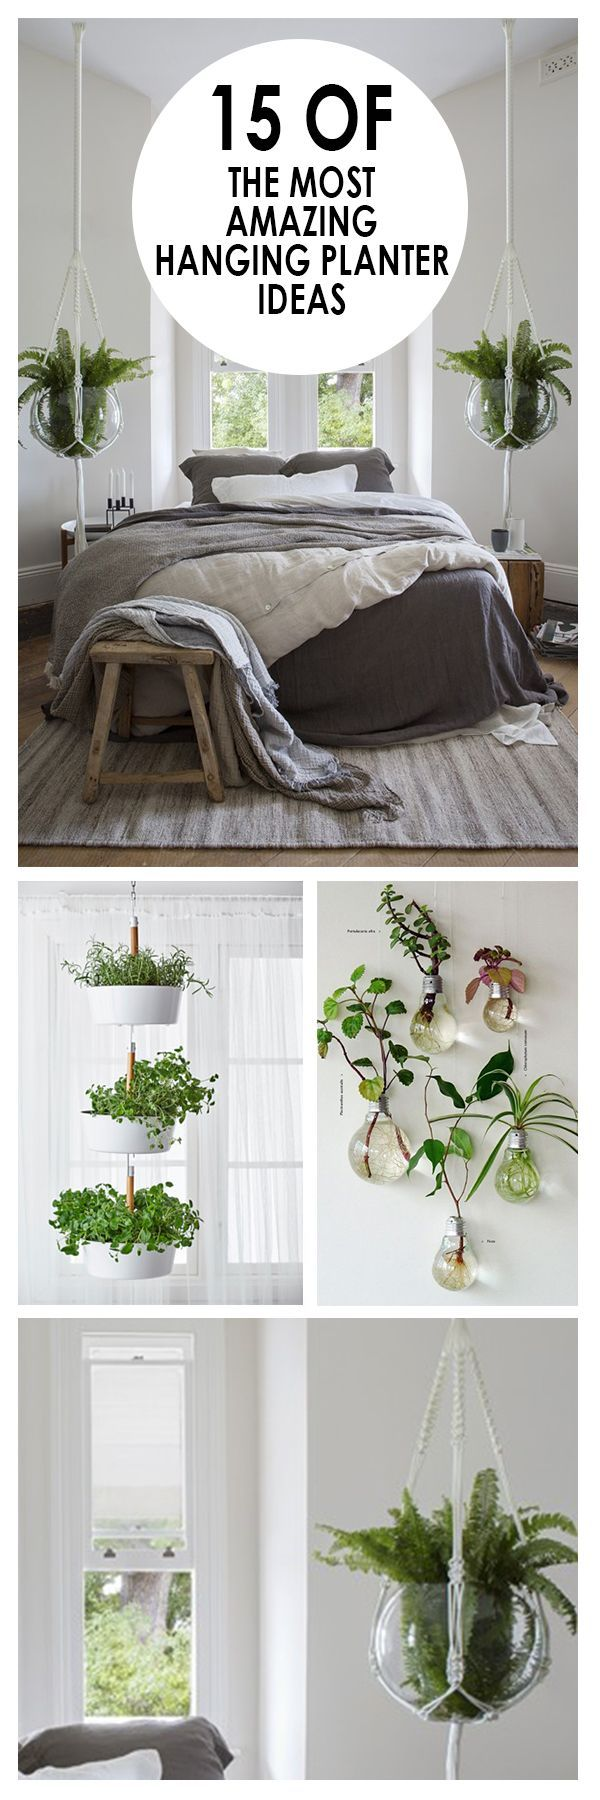 15 of the most amazing hanging planter ideas diy. Black Bedroom Furniture Sets. Home Design Ideas